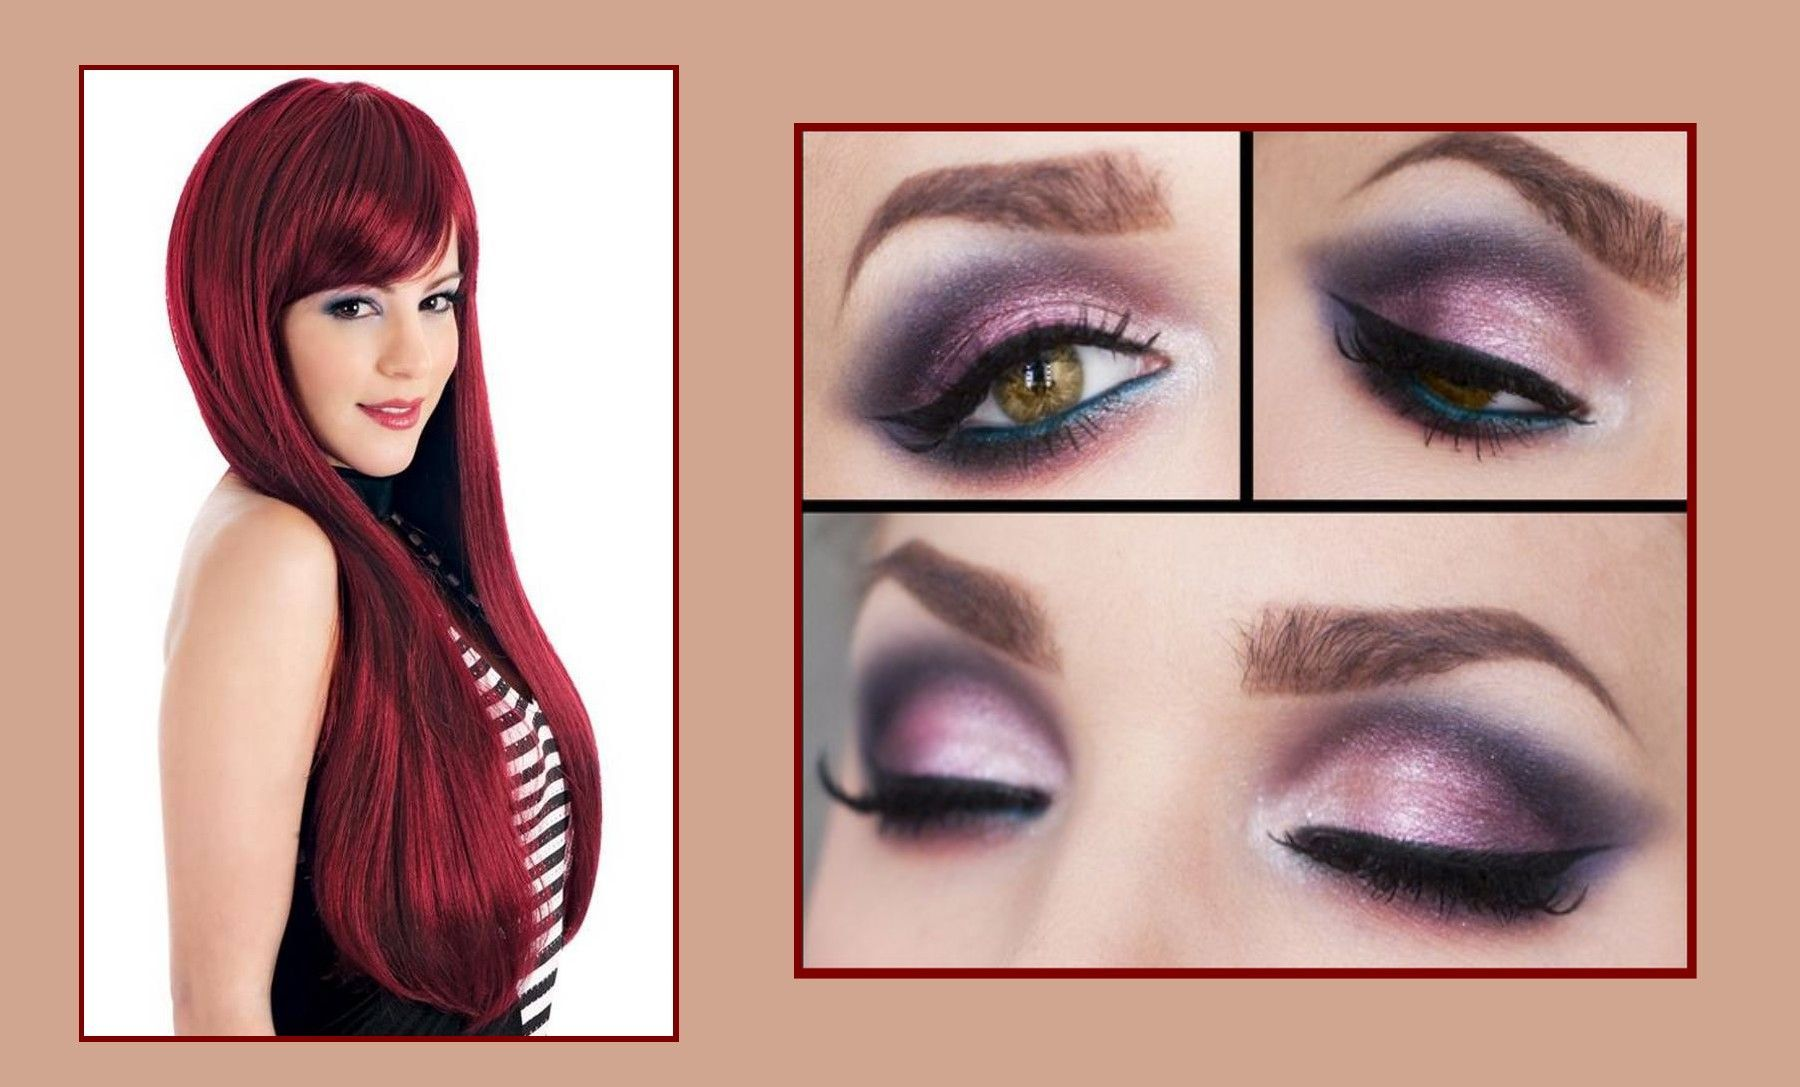 Eye Makeup For Hazel Eyes And Red Hair Eye makeup